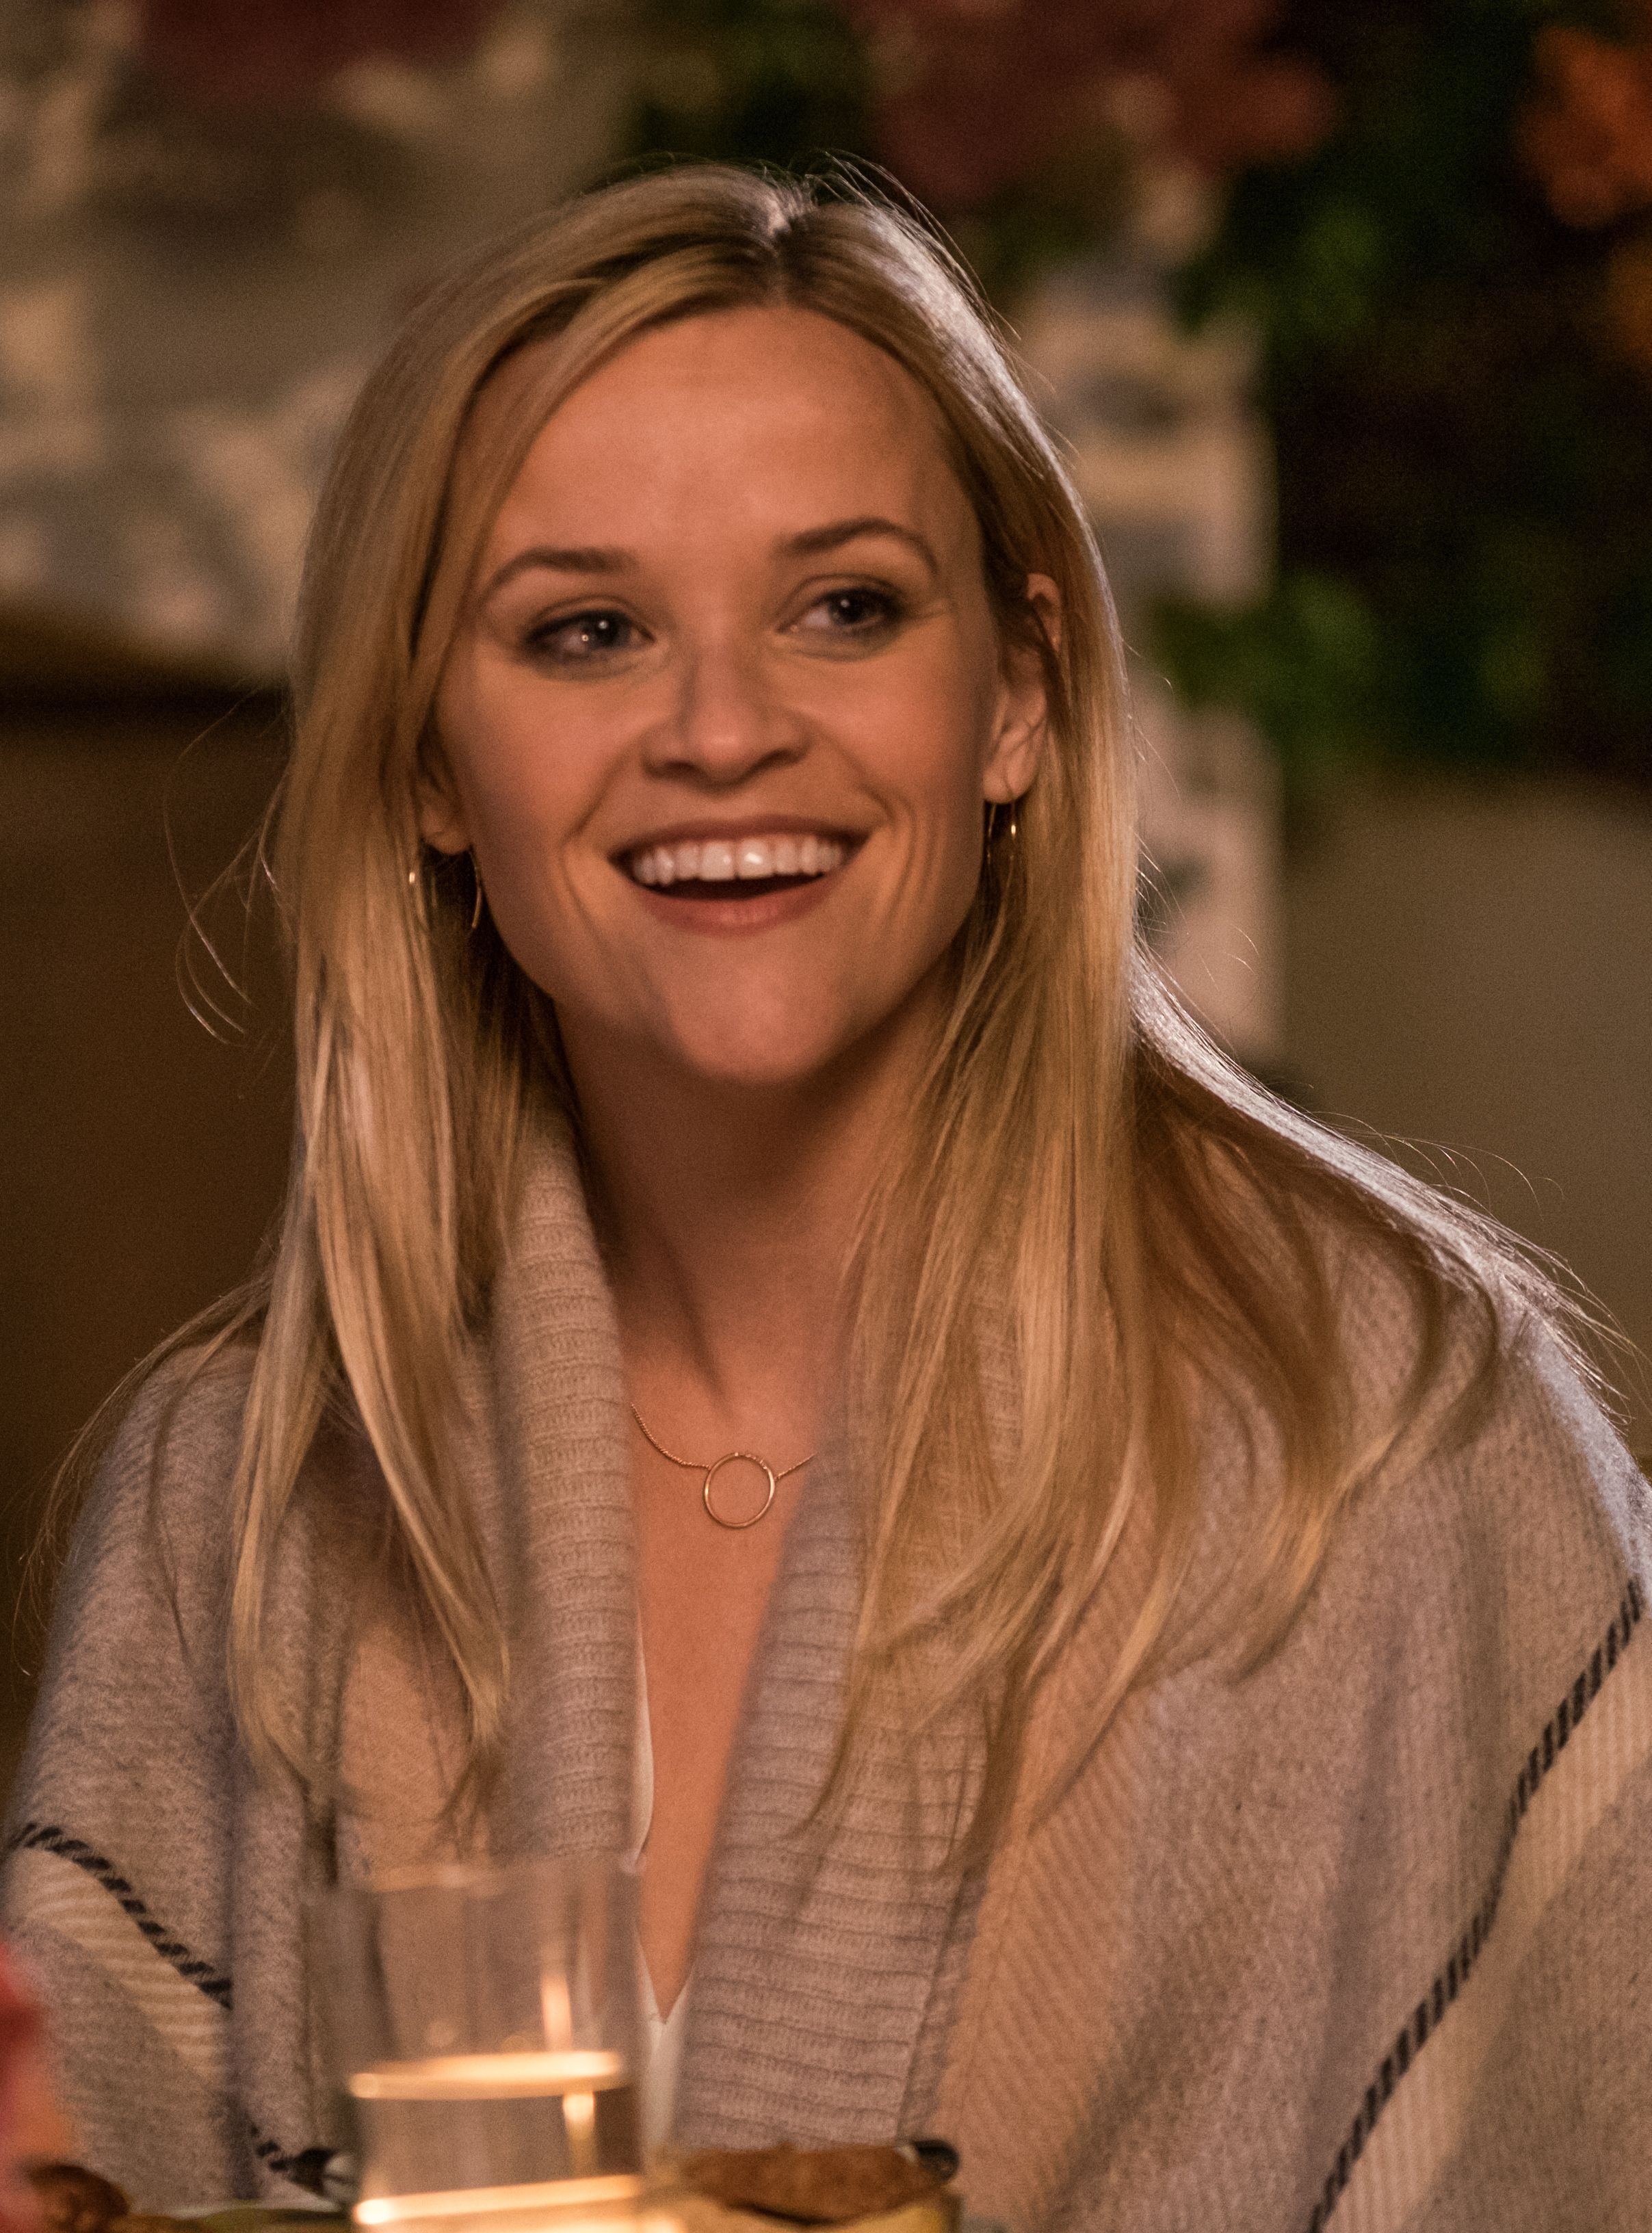 The New Home Again Poster Has Reese Witherspoon Back In Rom Com